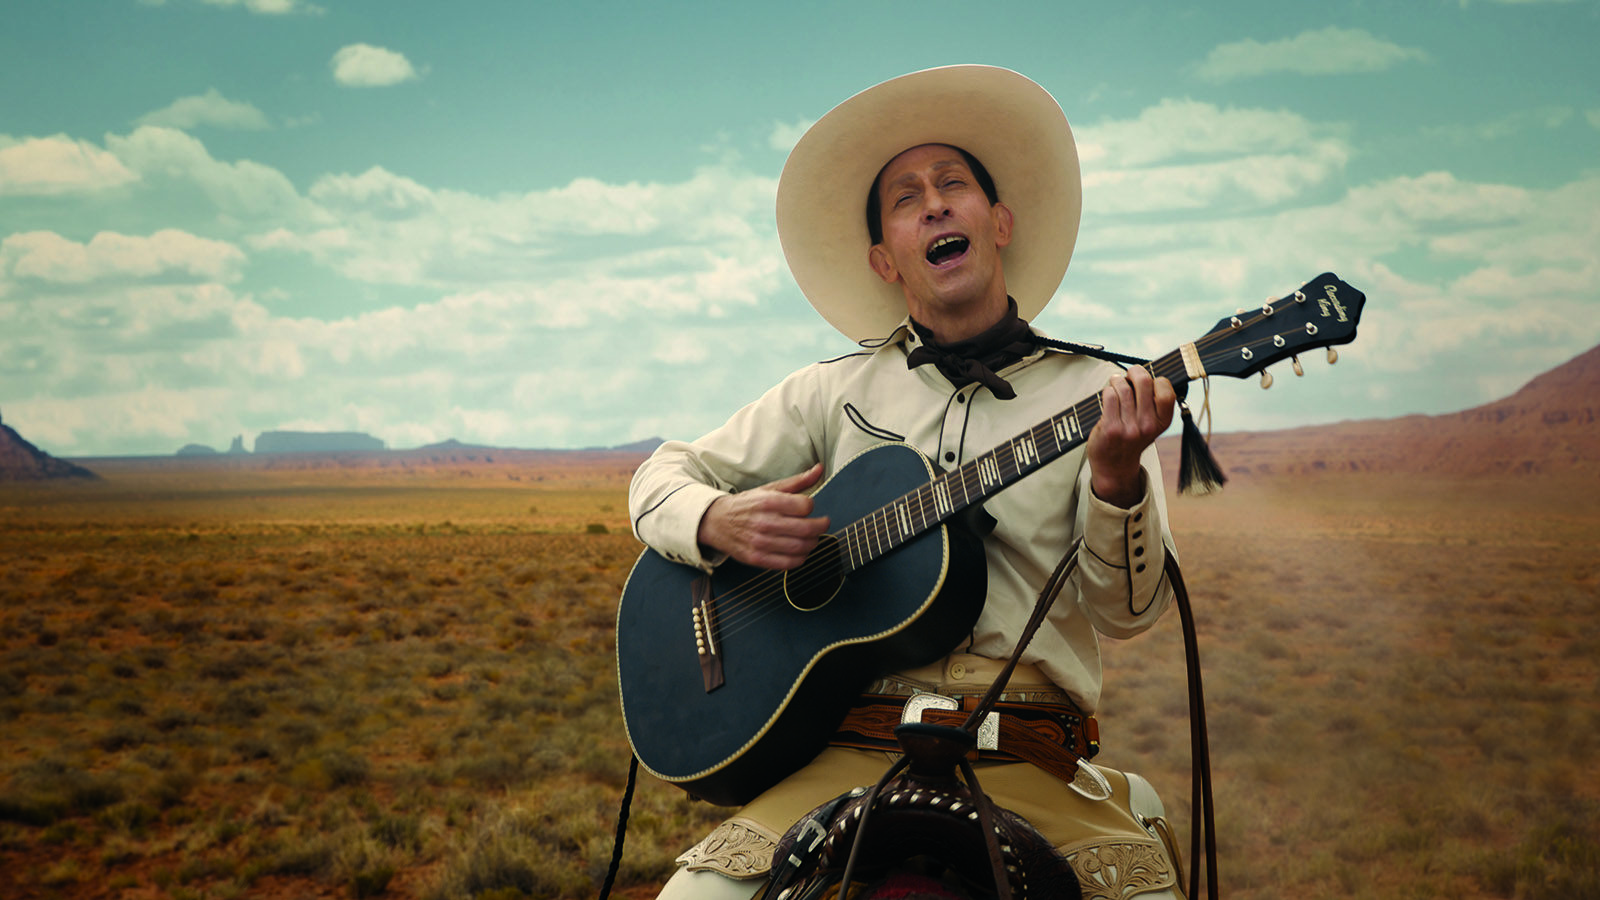 Tim Blake Nelson on a horse wearing white playing a guitar and singing in front of a picturesque landscape in the film The Ballad of Buster Scruggs